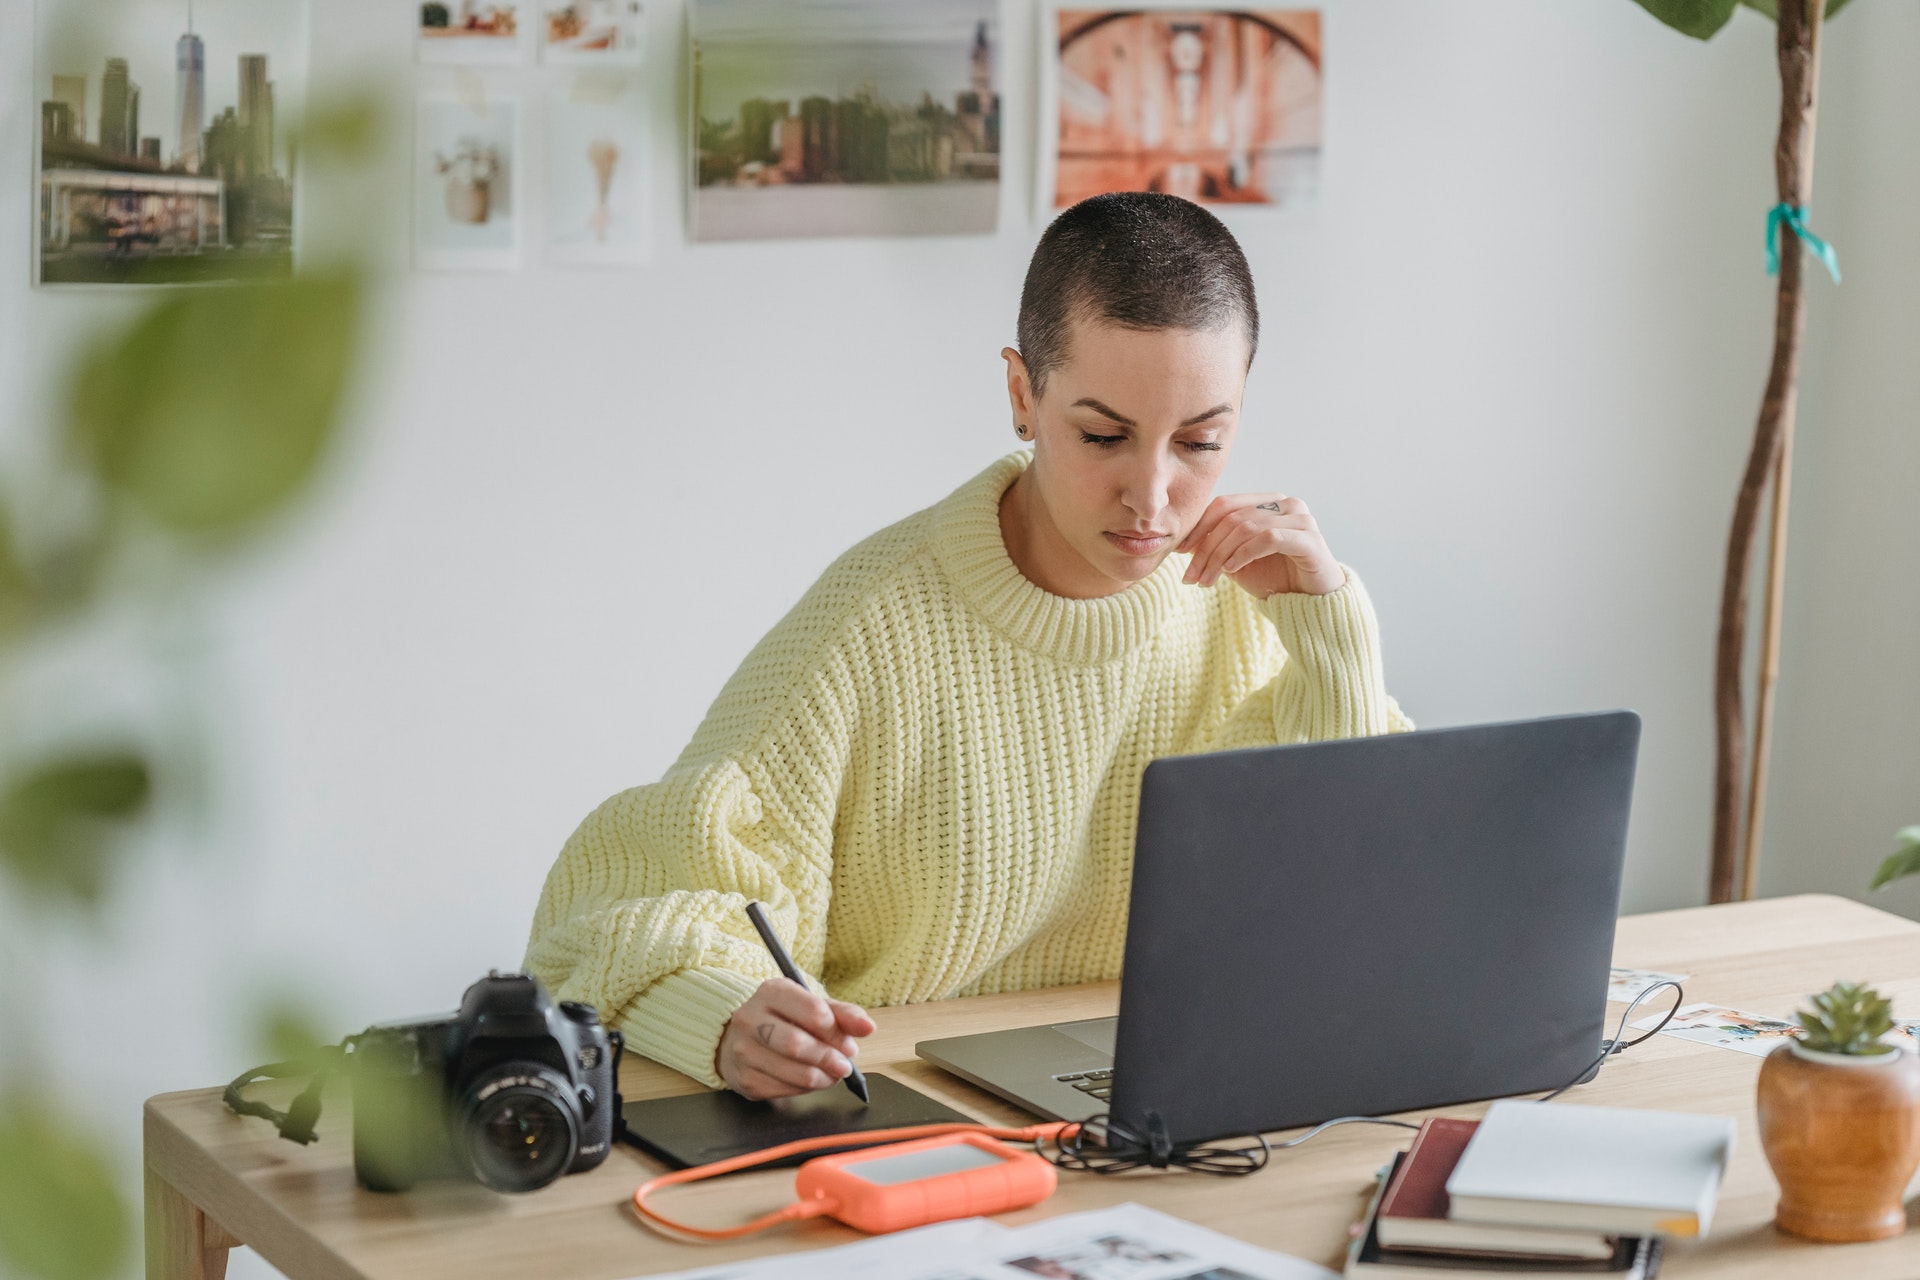 Short-haired woman with light yellow sweater, illustrating with their computer.